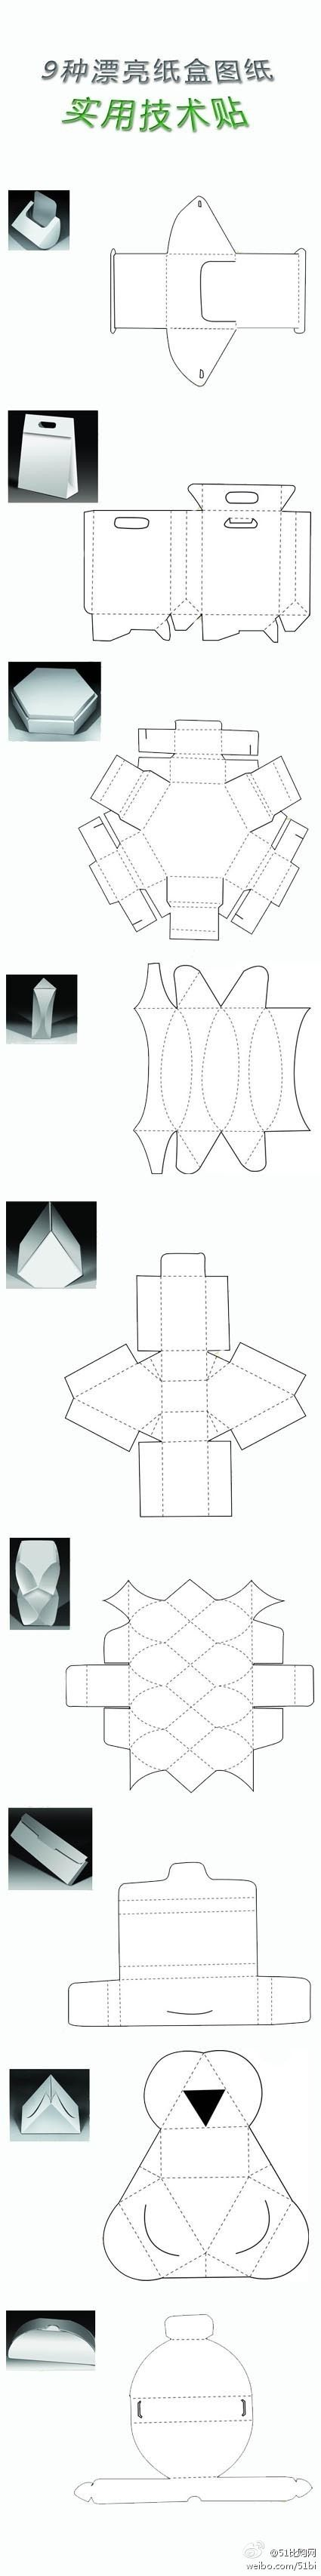 Packaging templates: Craft, Idea, Paper, Boxes, Packing, Box Templates, Diy